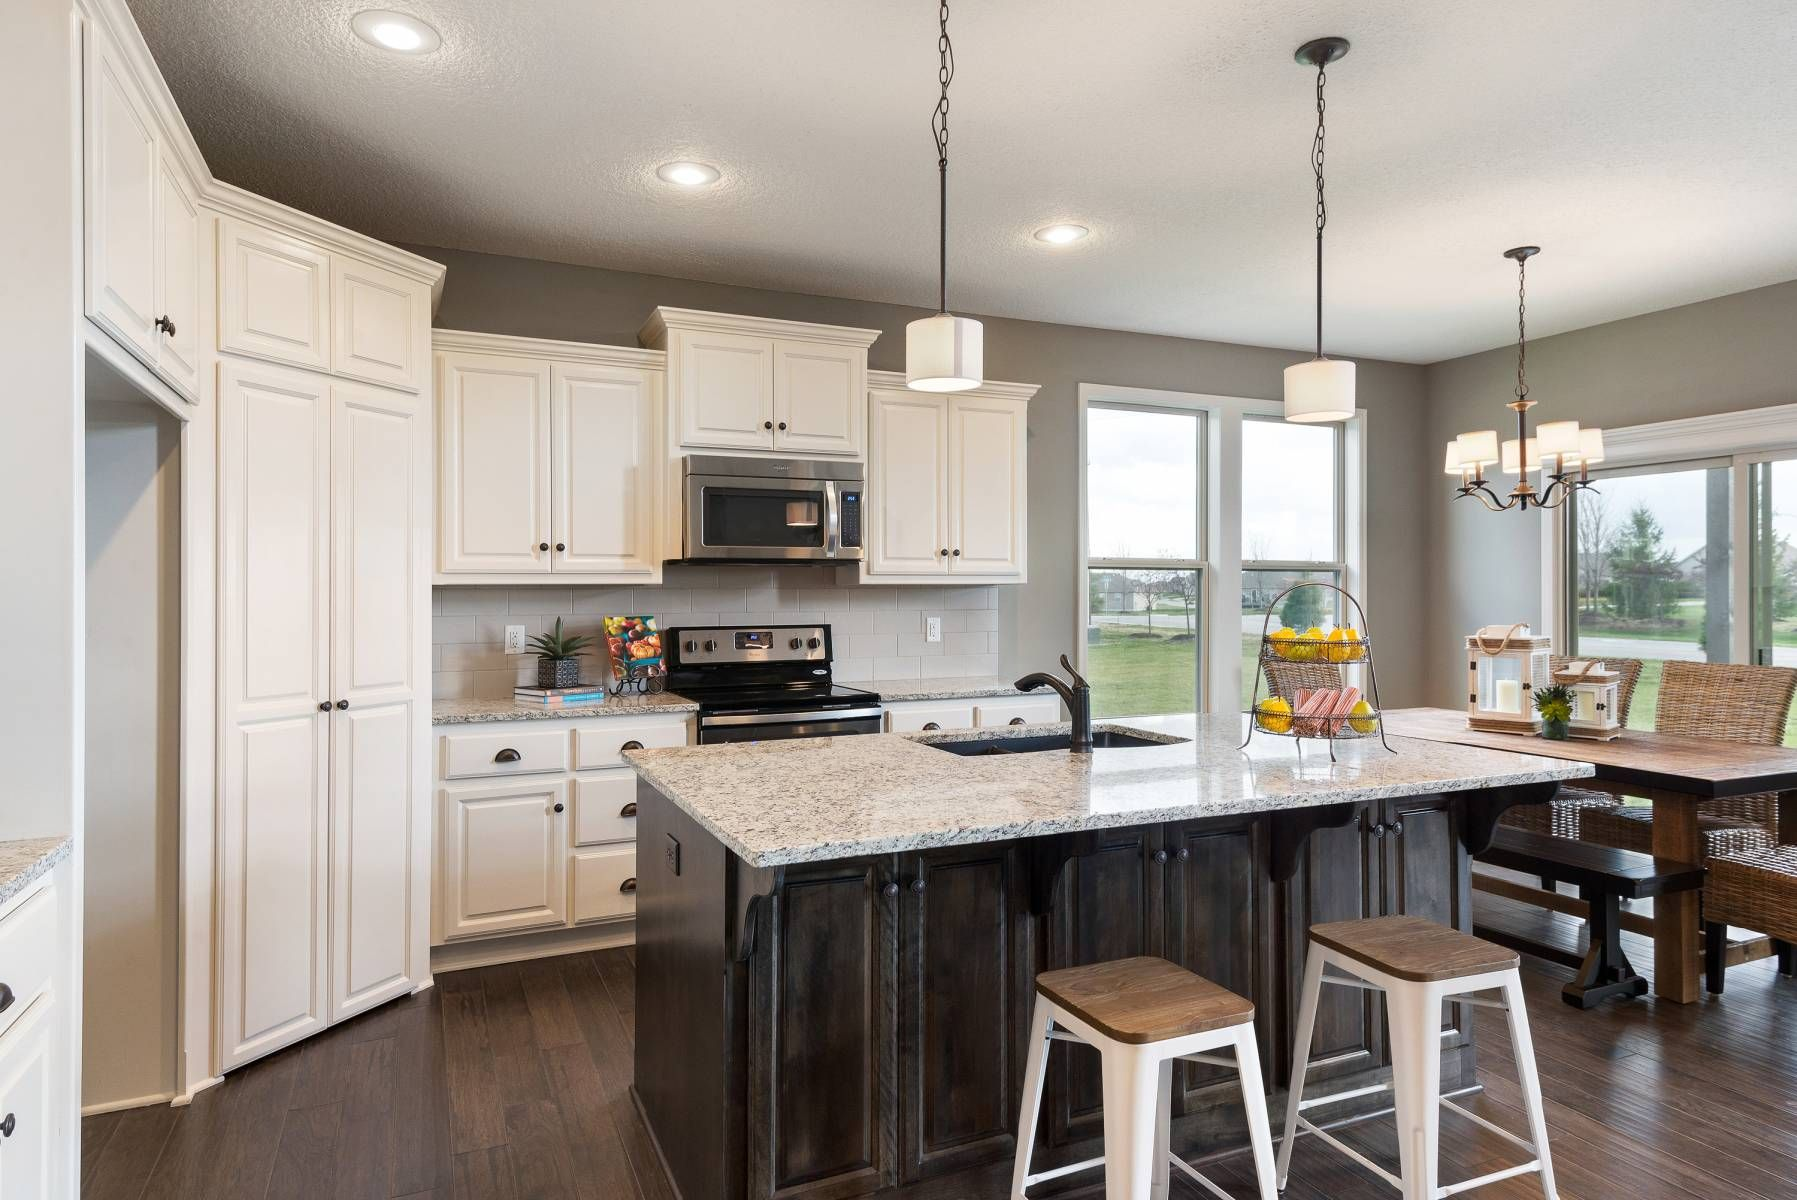 White Kitchen Cabinets And A Large Island In The Bayfield Floor